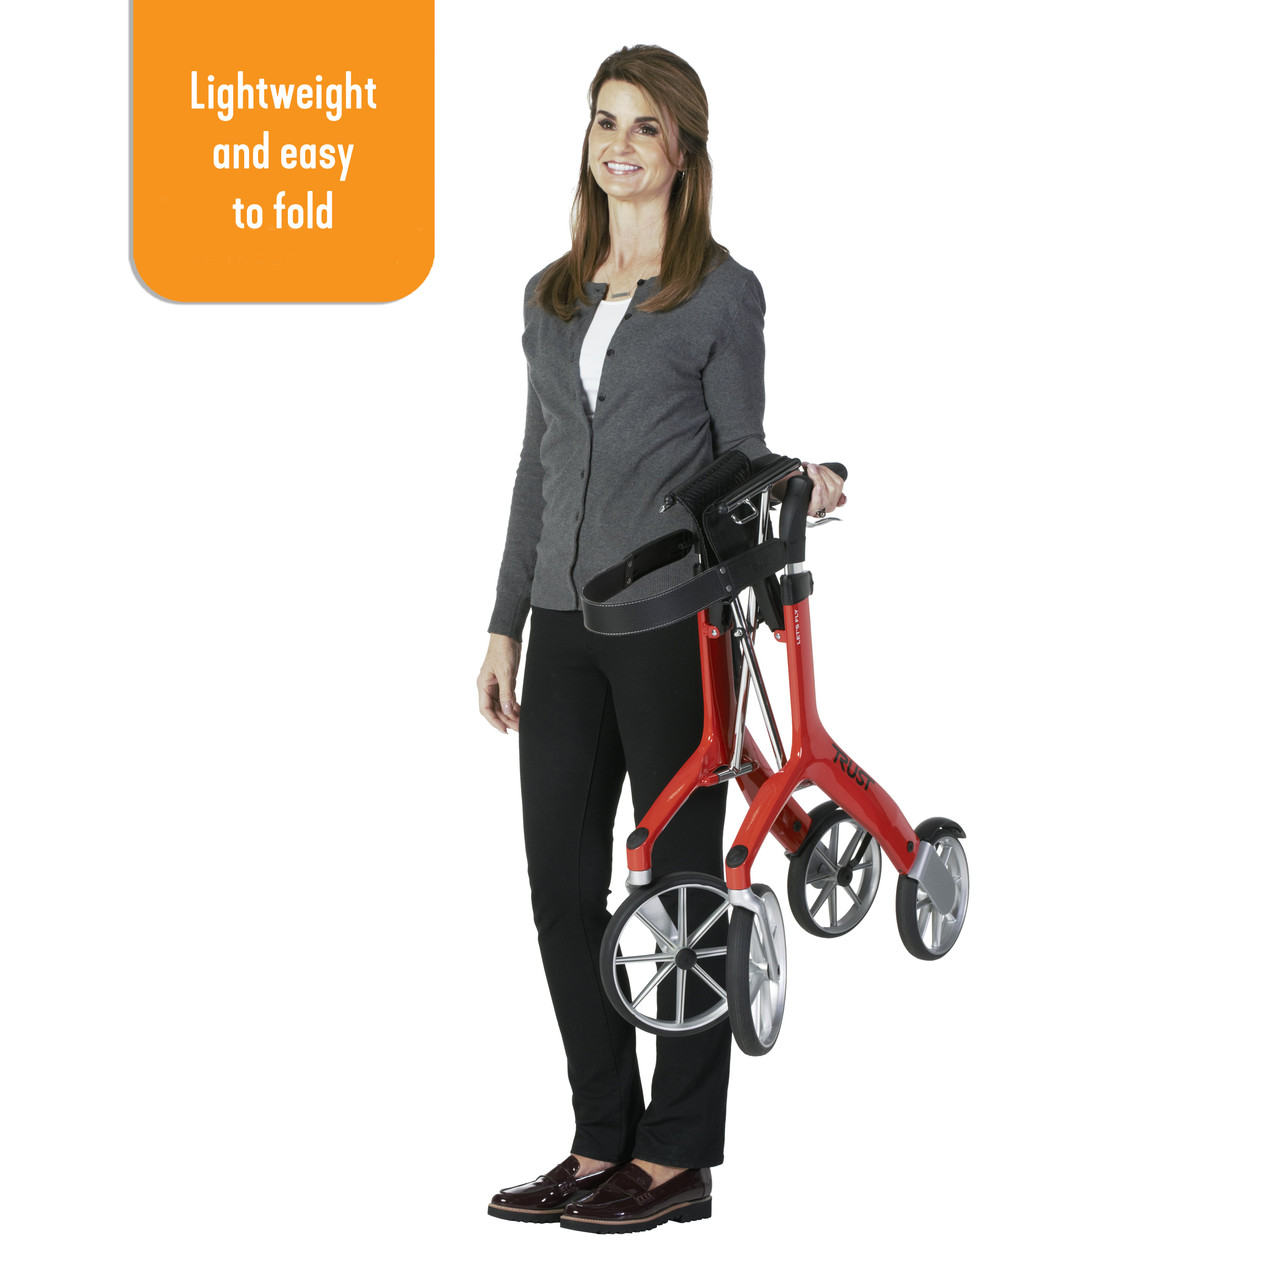 Let's Fly Rollator folded and lightweight